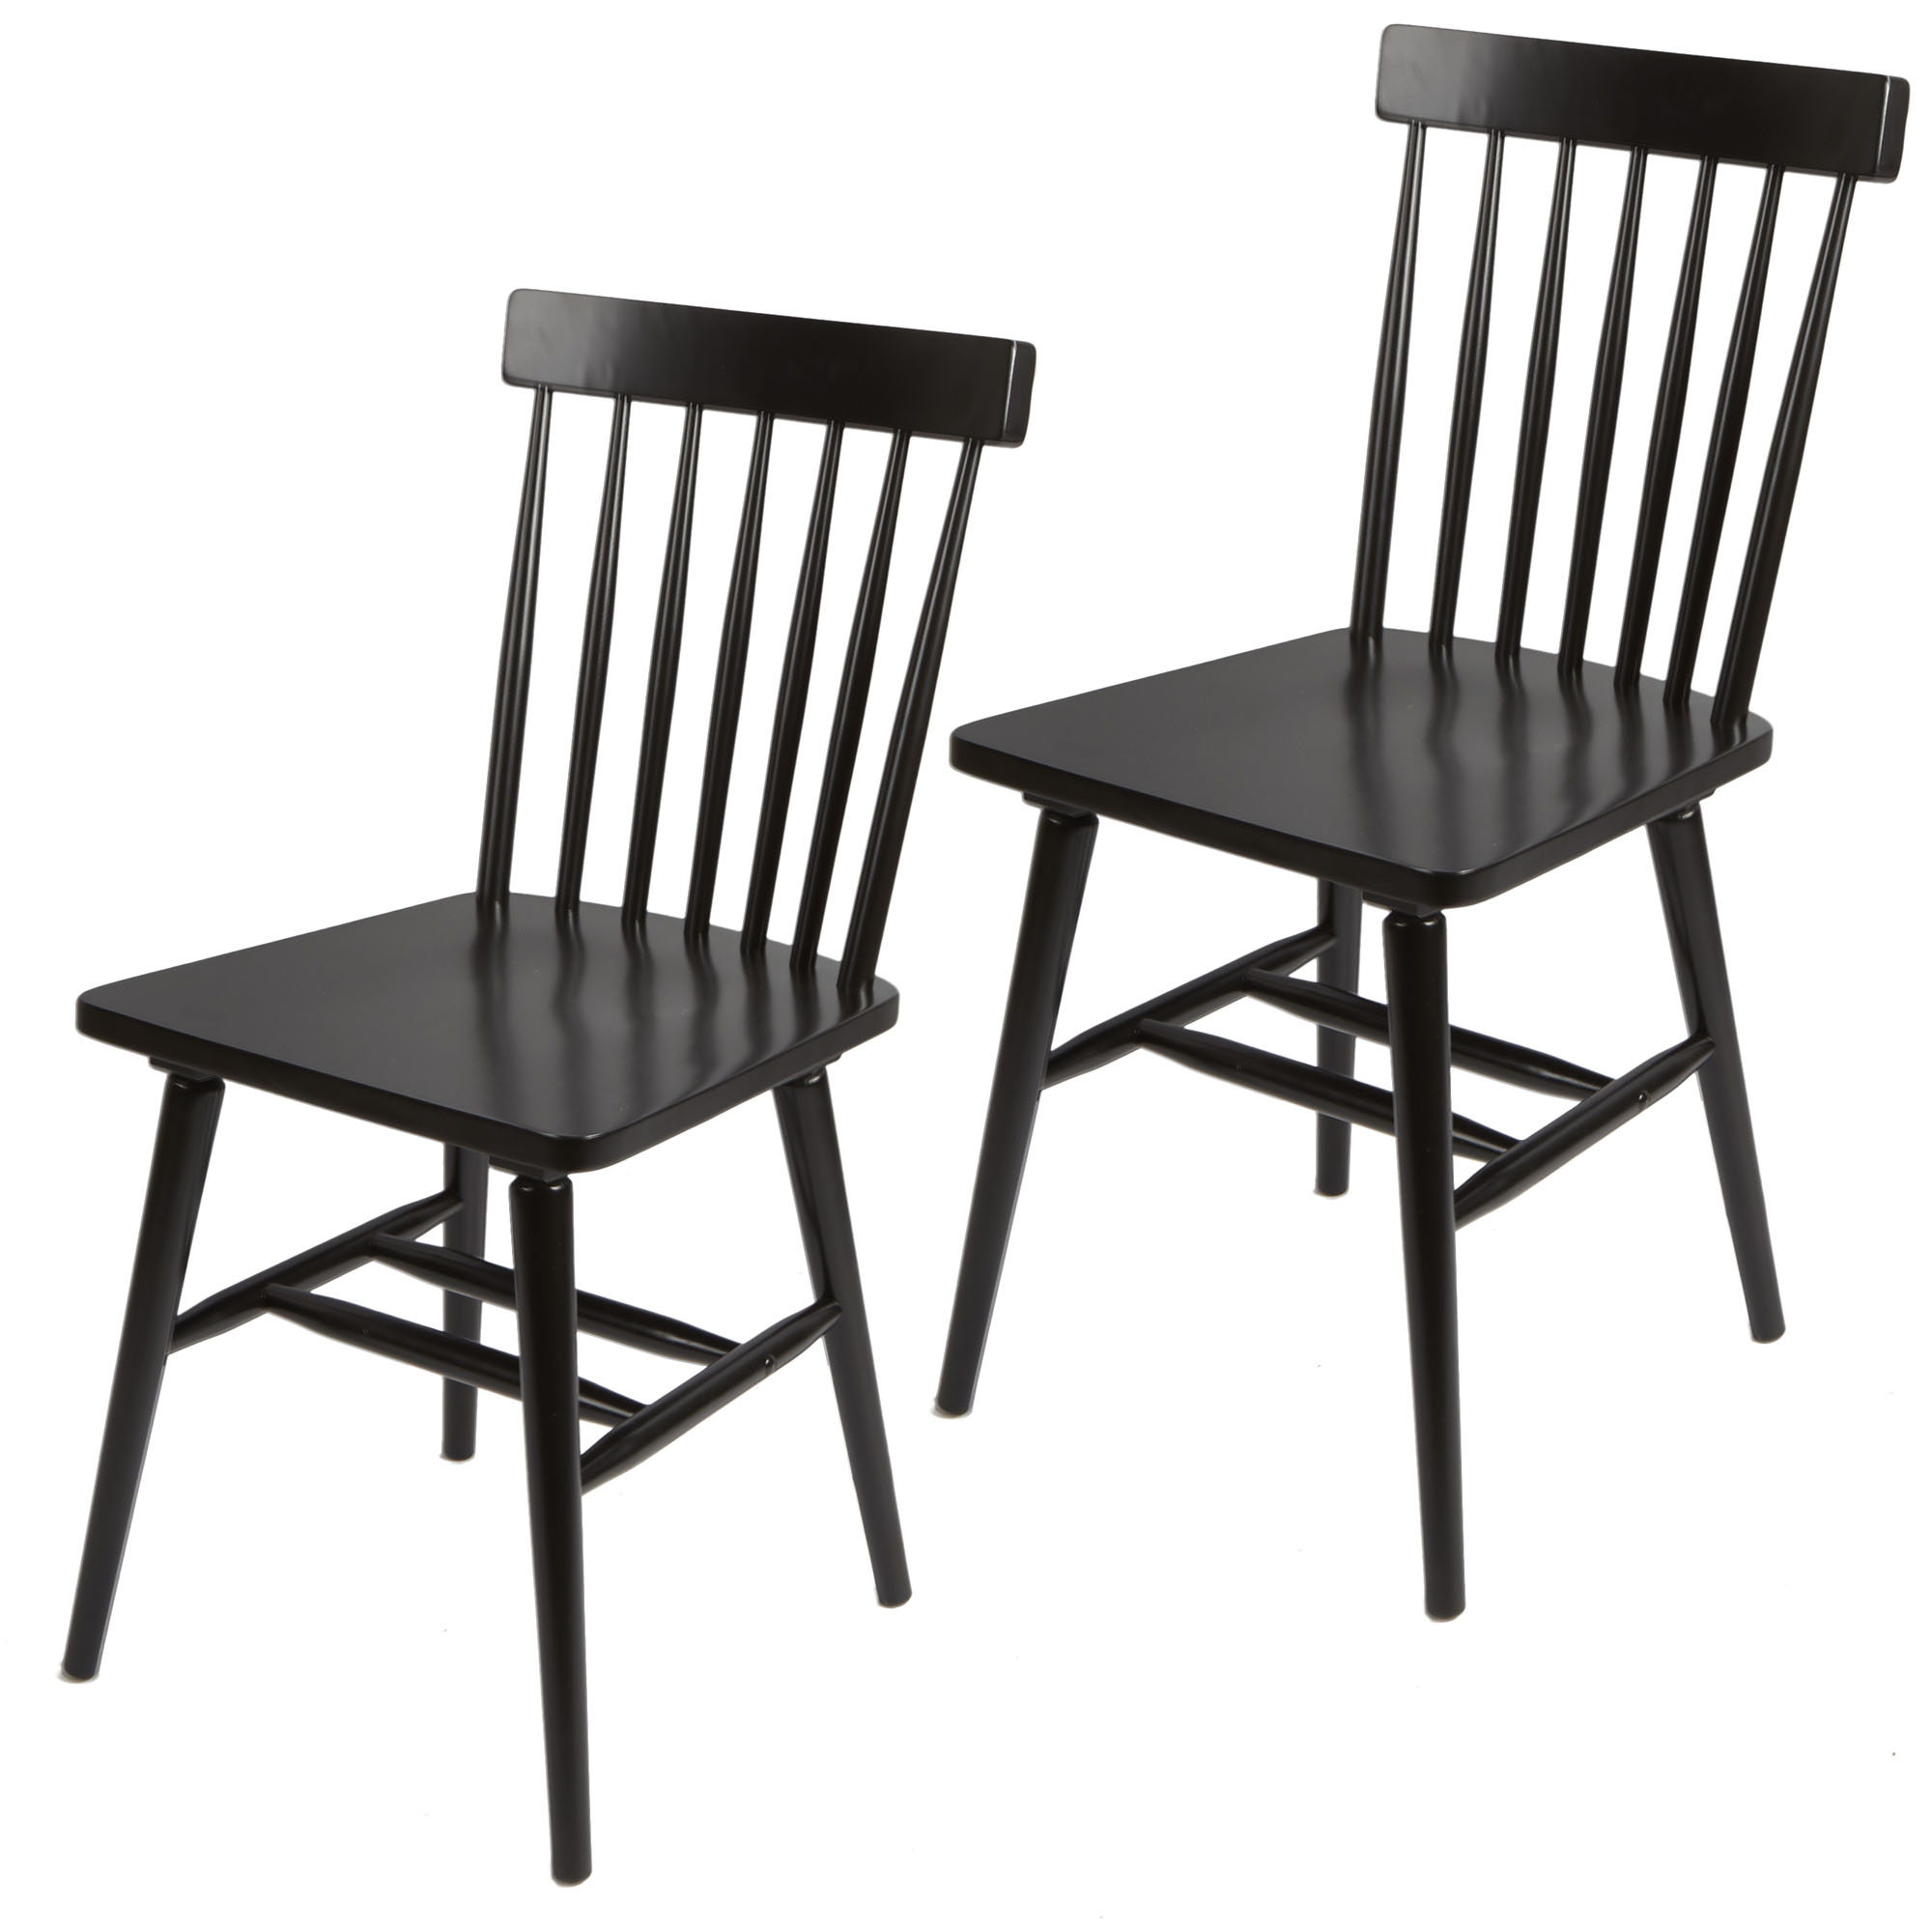 Better Homes & Gardens Gerald Dining Chairs Set of 2, Multiple Finishes